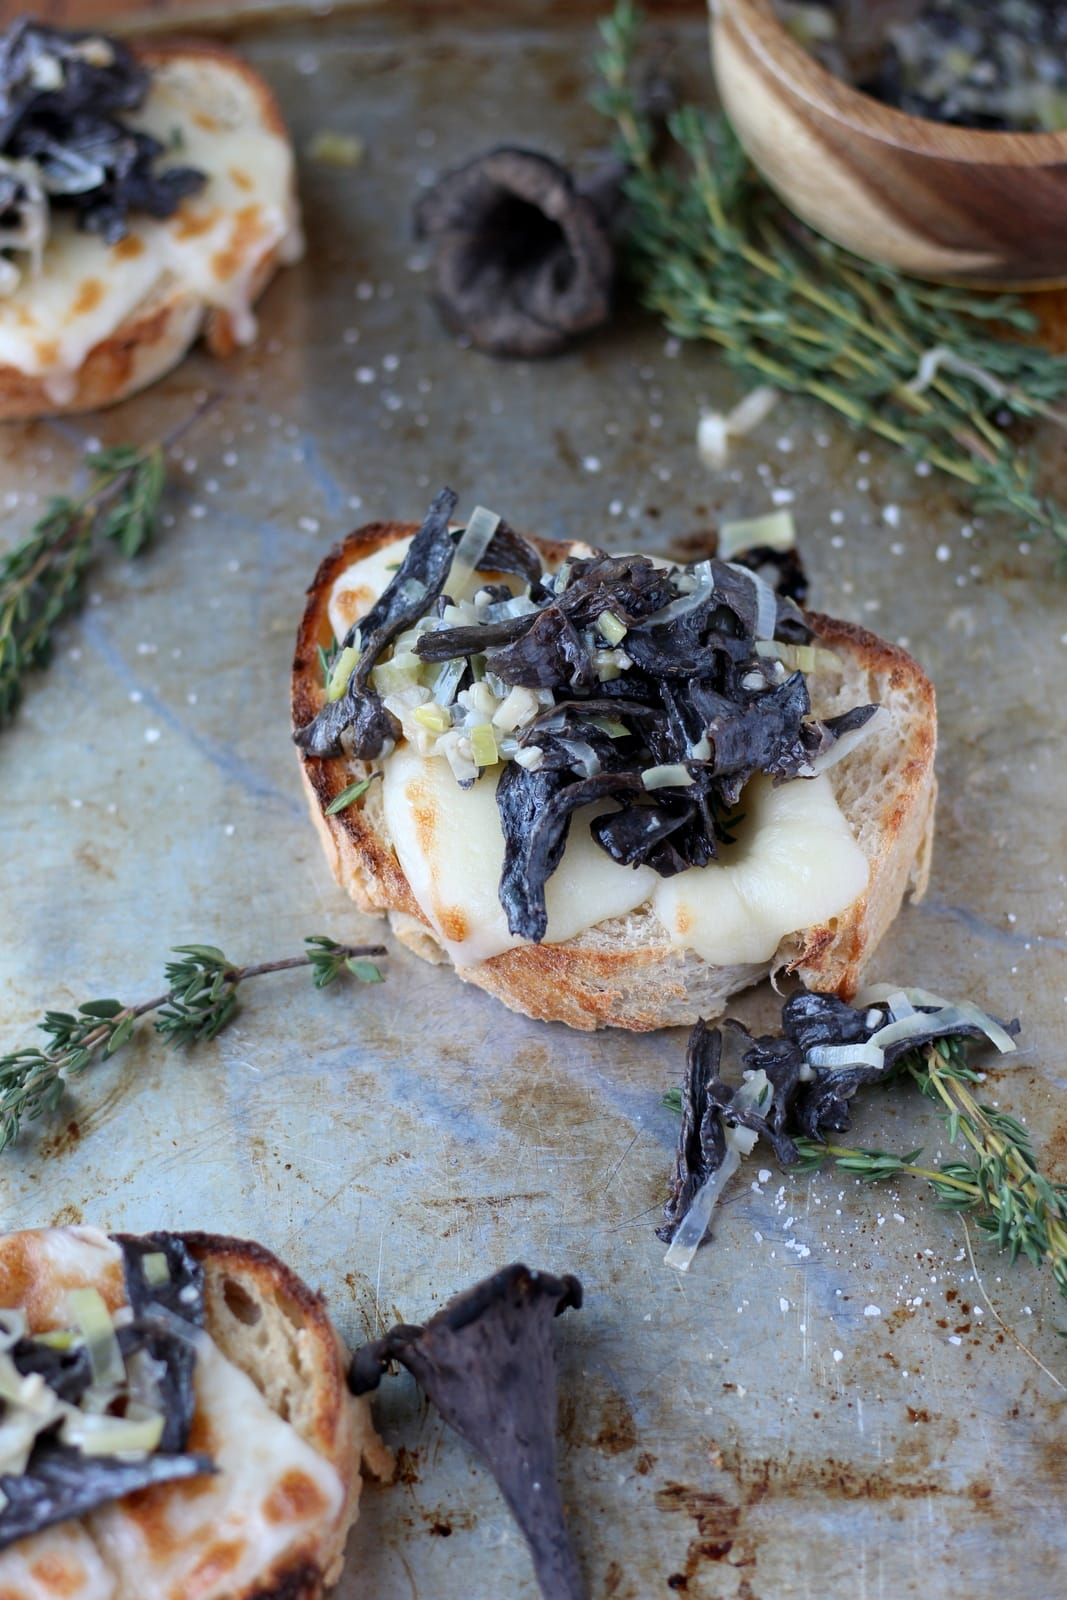 Creamy Leeks and Wild Black Trumpet Mushrooms on Toast. Perfect recipe for those fall mushrooms. Use as an appetizer, small plate or breakfast. thewoodenskillet.com #foodphotography #foodstyling